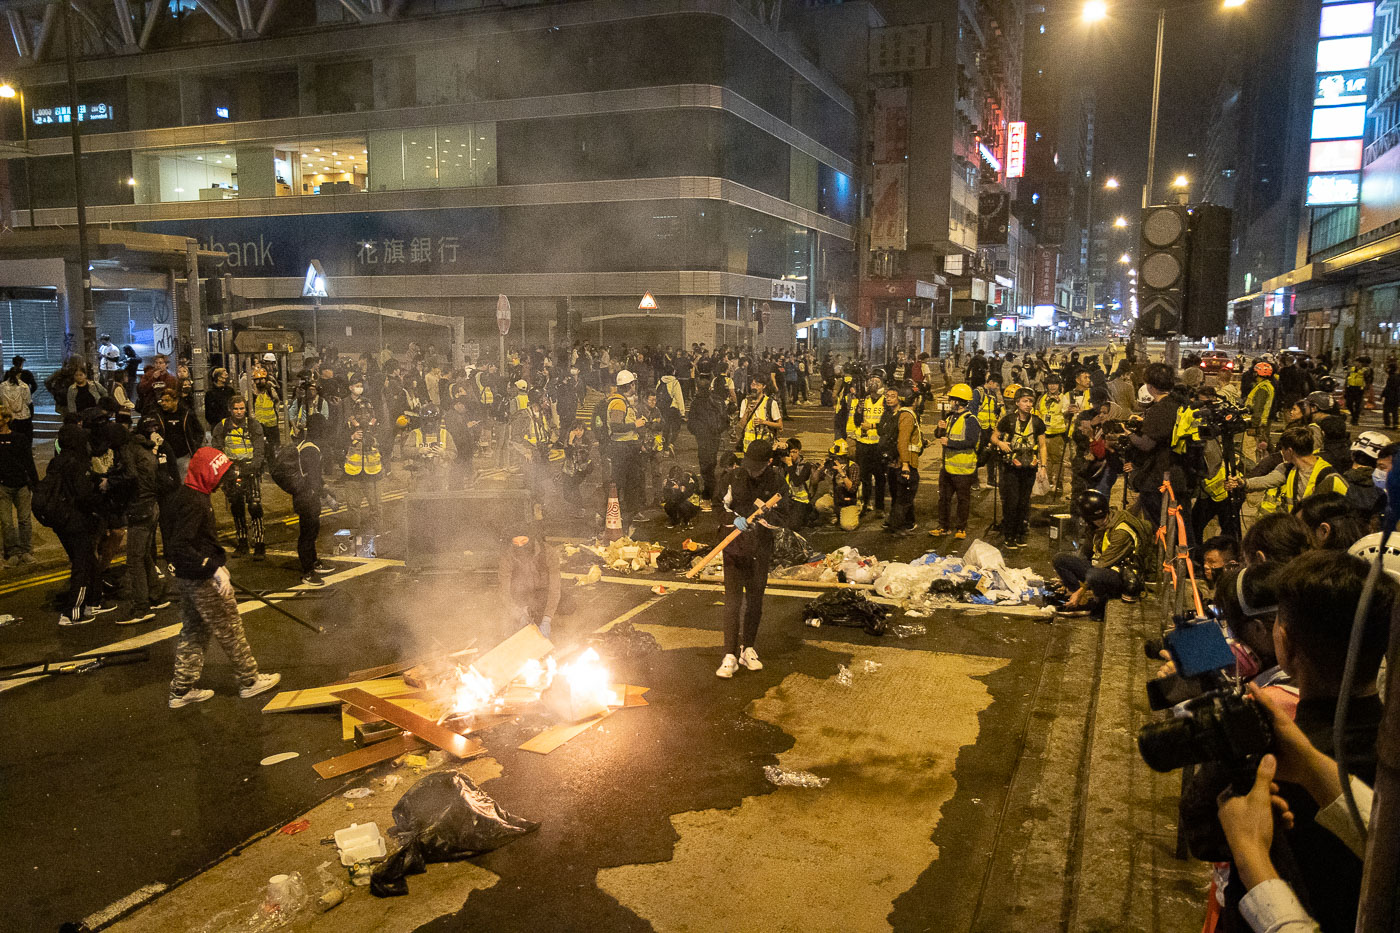 Press photographers look on as Hong Kong pro-democracy protesters set a fire in the street.